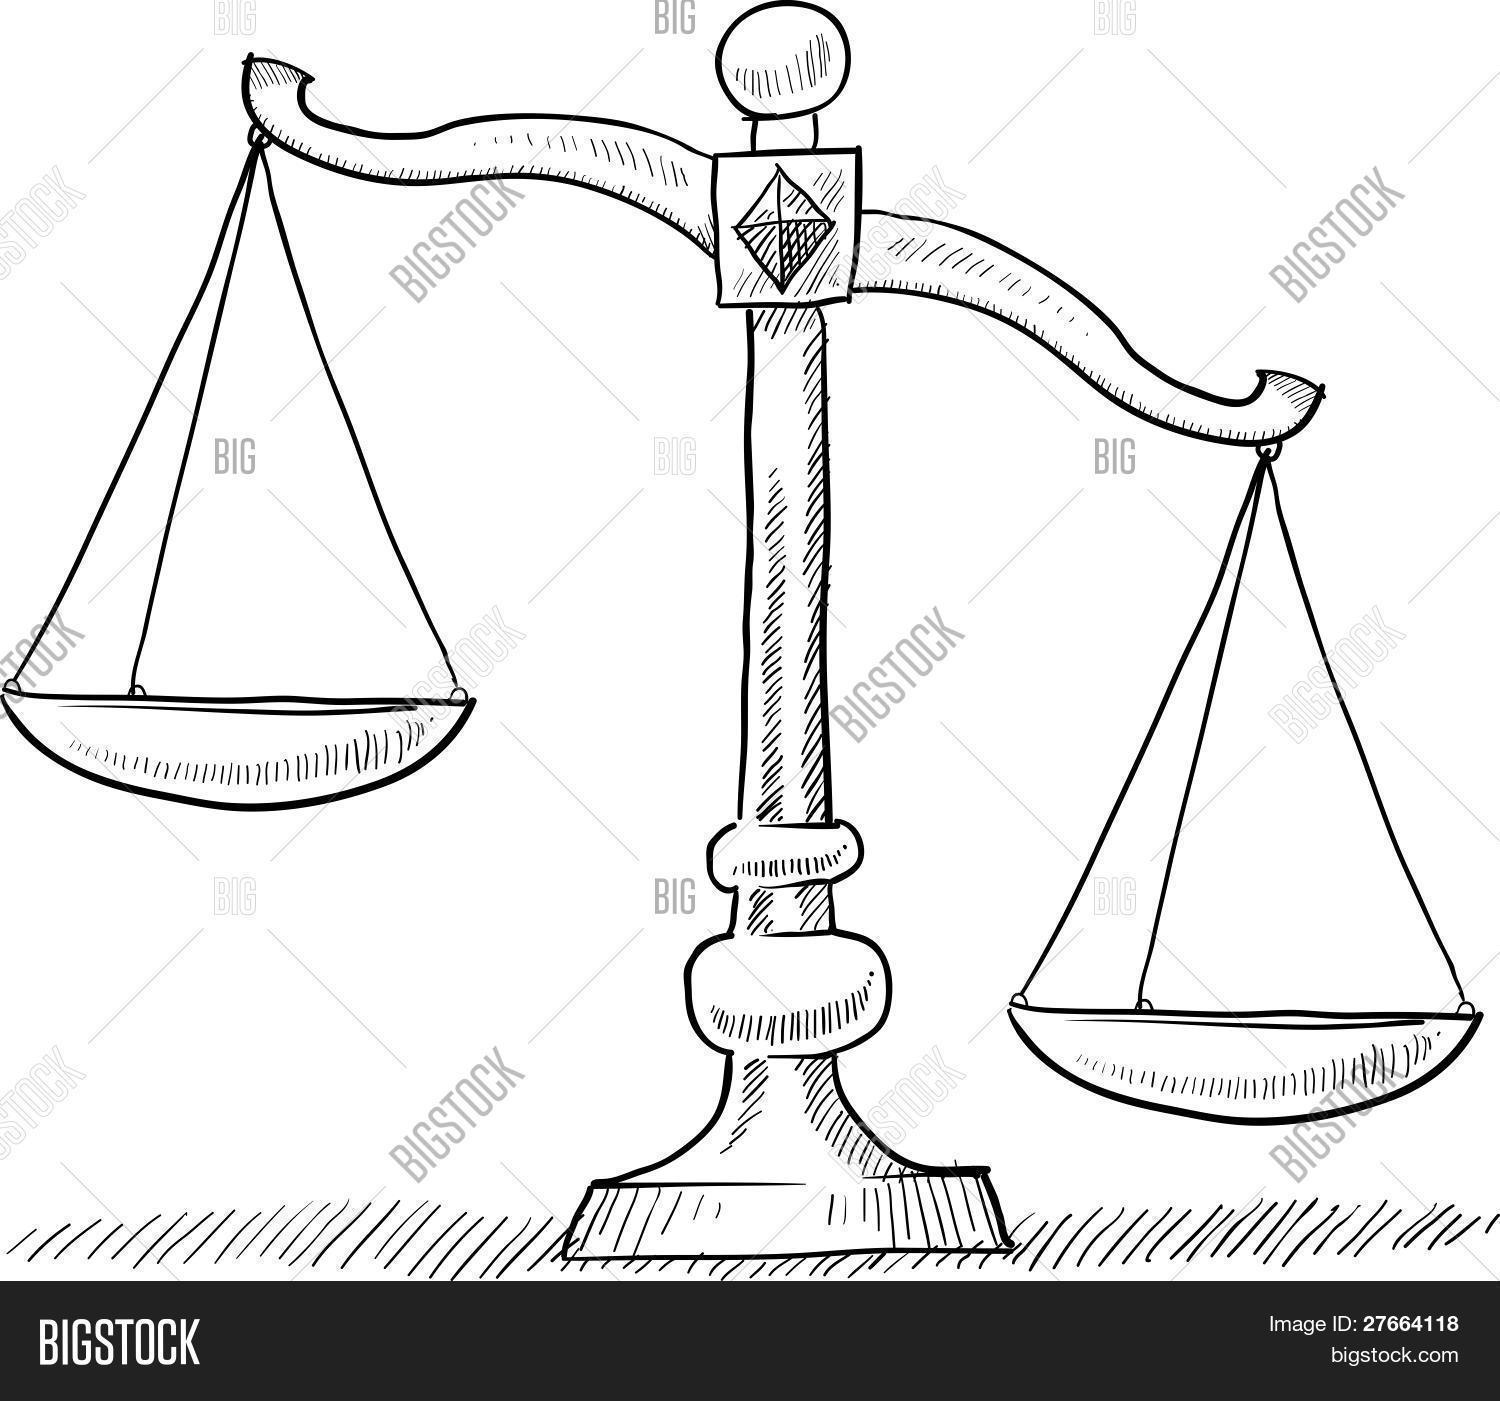 Tipped Scales Drawing Vector Amp Photo Free Trial